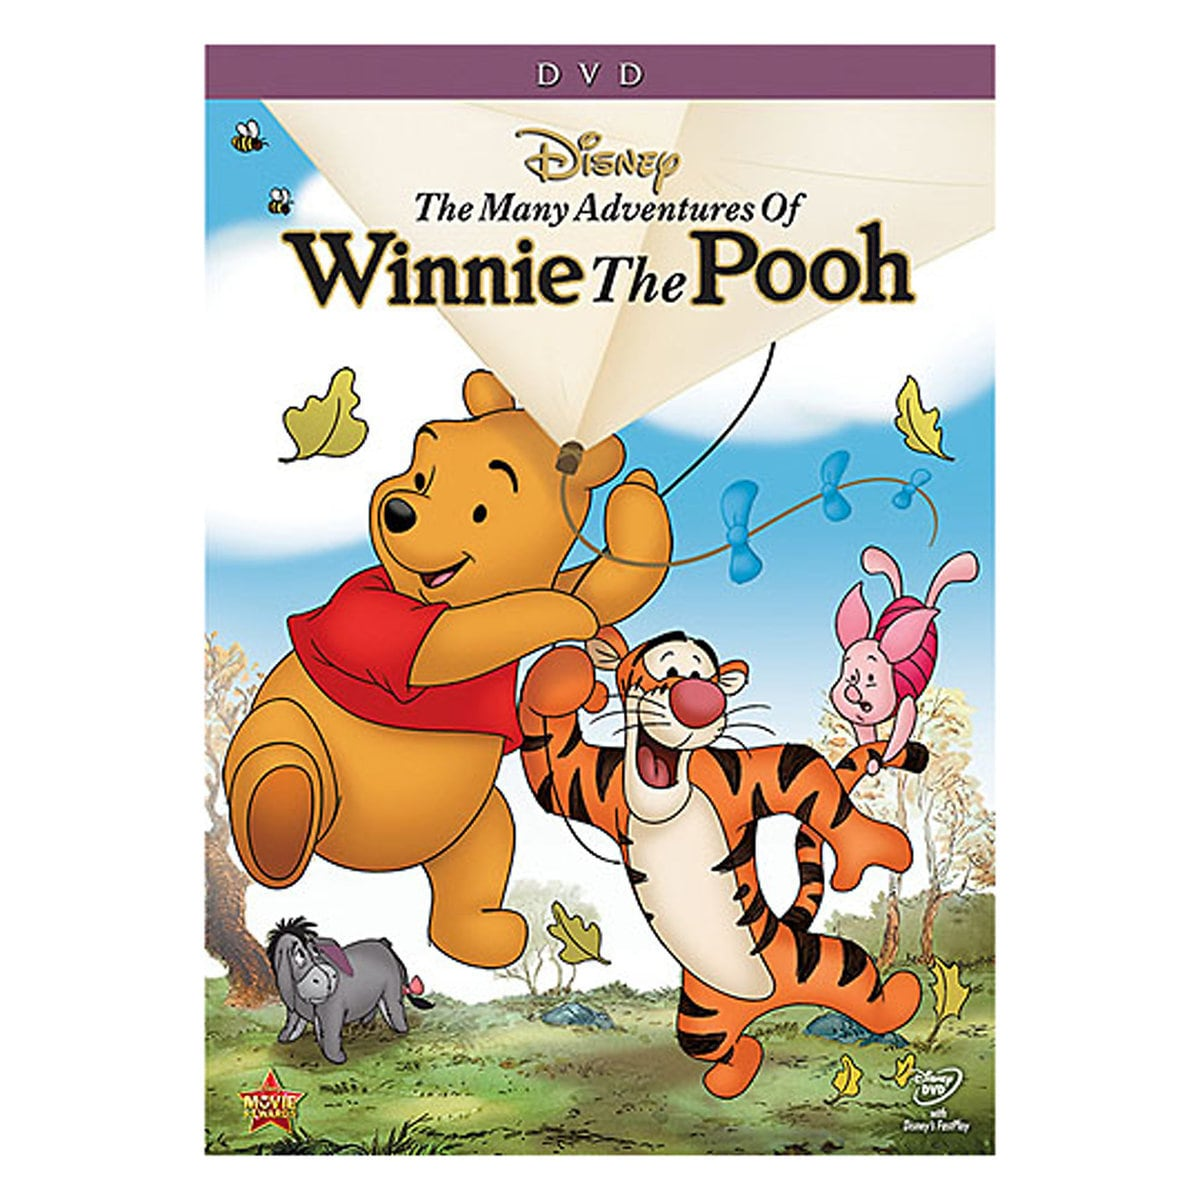 The many adventures of winnie the pooh dvd shopdisney product image of the many adventures of winnie the pooh dvd 1 voltagebd Image collections